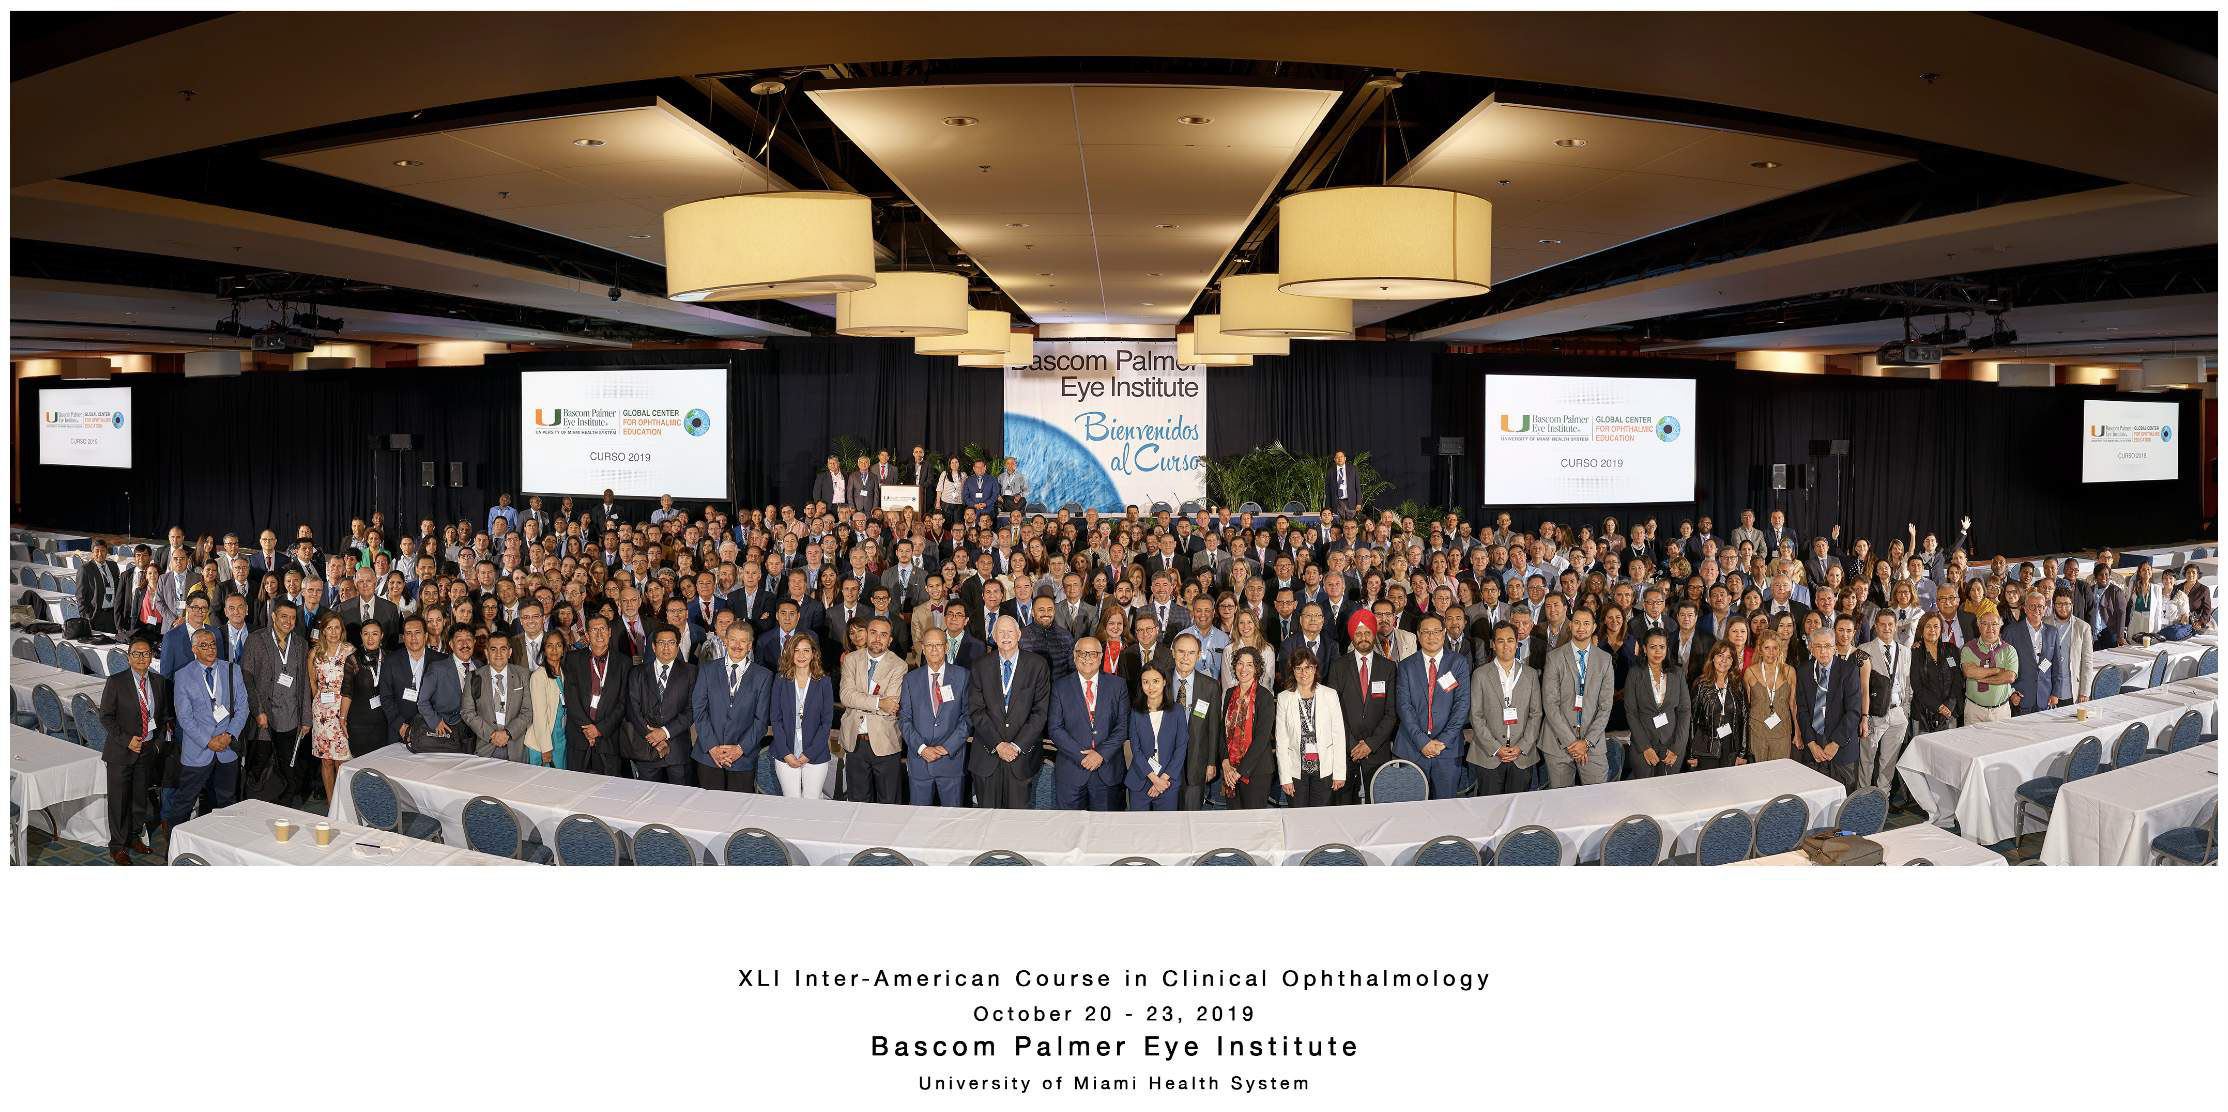 XLI Inter-American Course in Clinical Ophthalmology